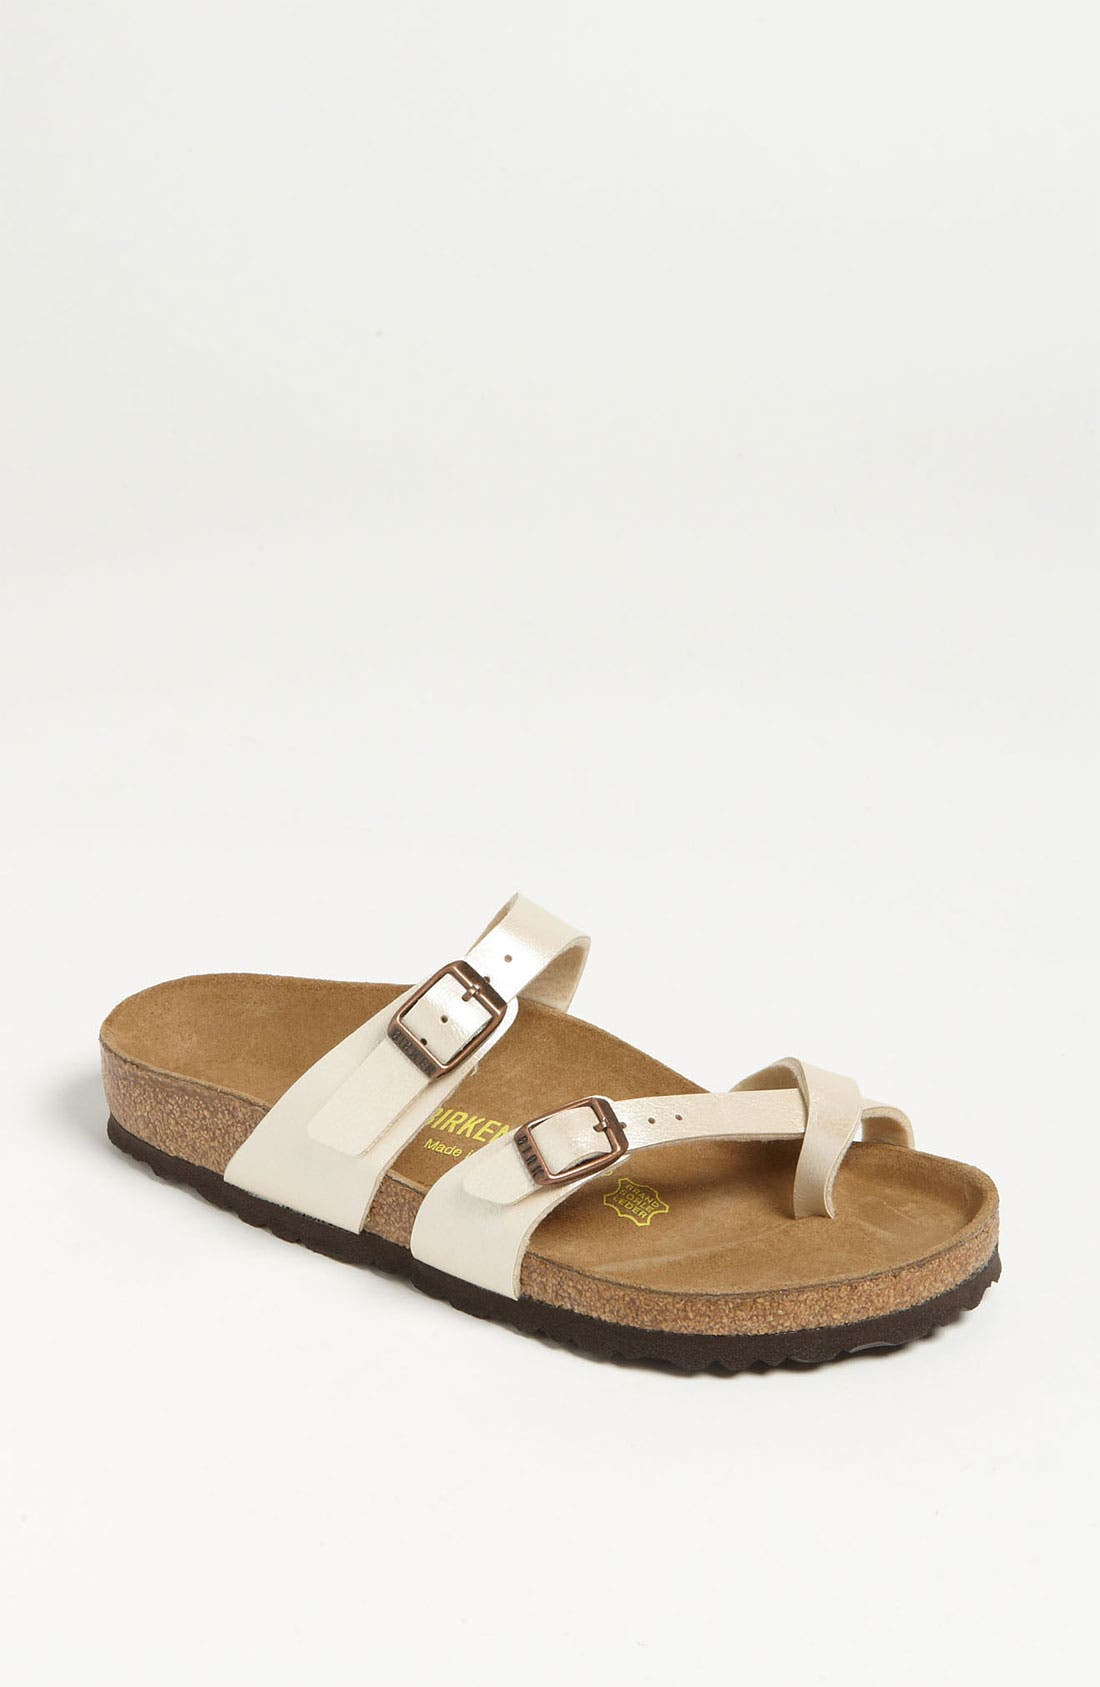 Alternate Image 1 Selected - Birkenstock 'Mayari' Birko-Flor™ Sandal (Women)